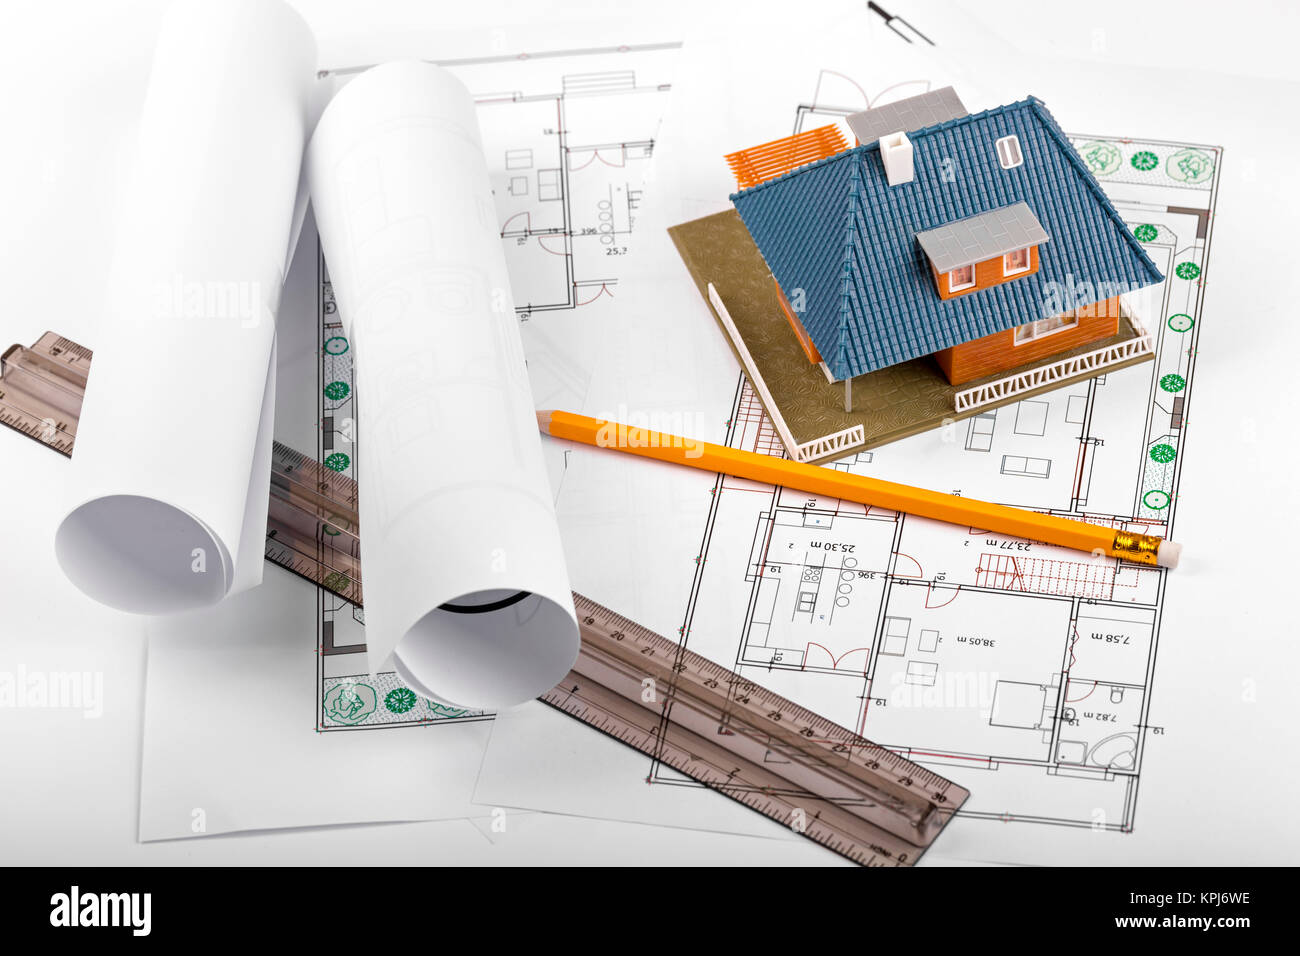 Scale model housing project stock photos scale model housing housing development new real estate project house on blueprints stock image malvernweather Choice Image